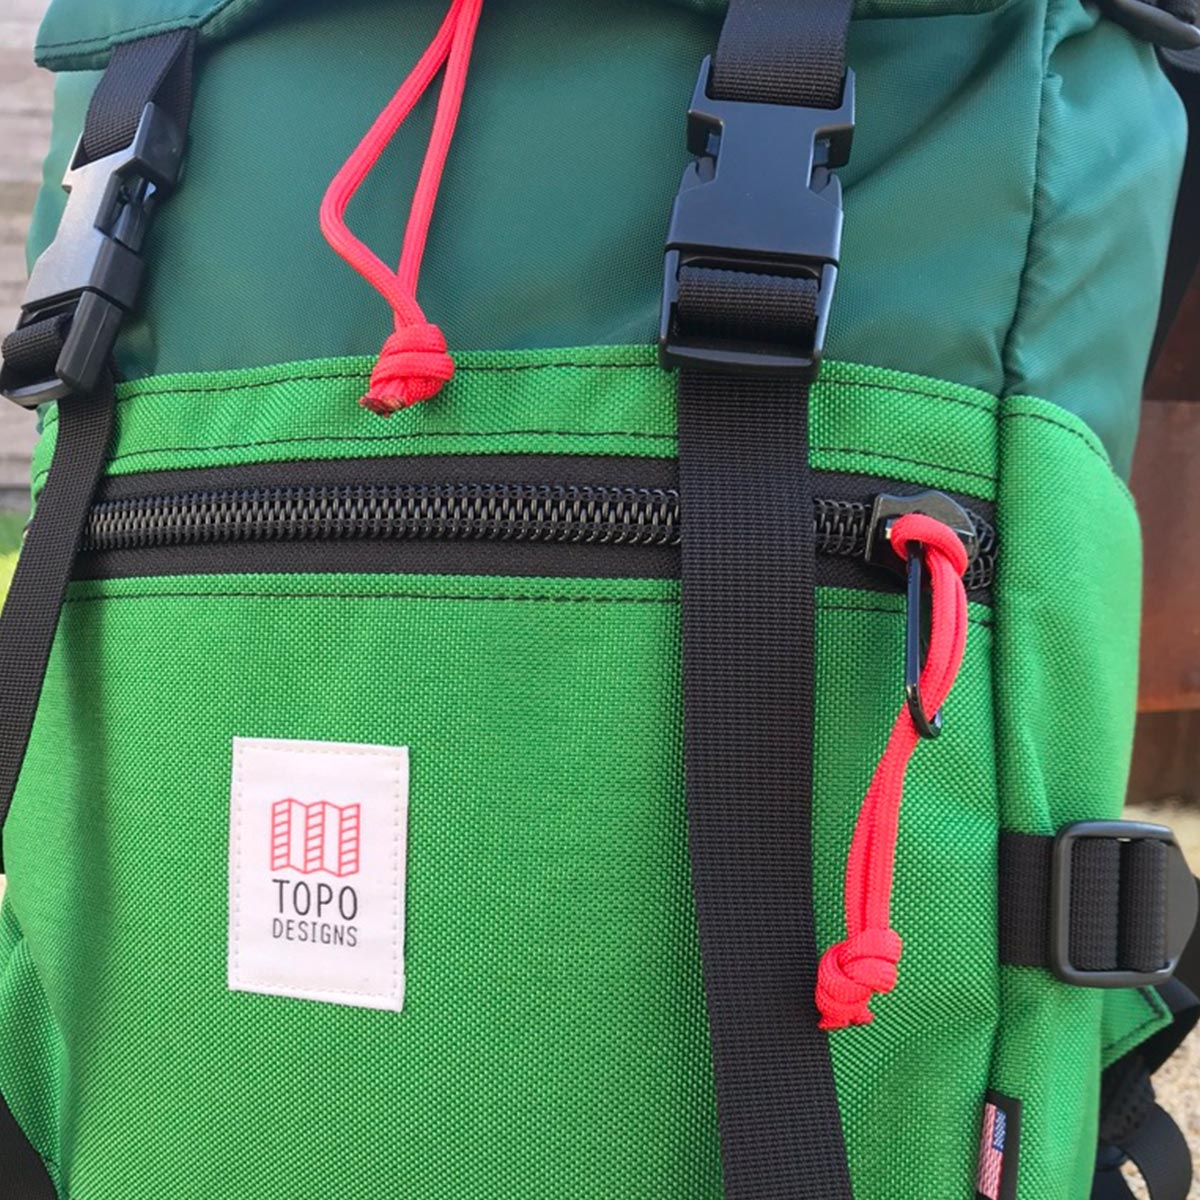 Topo Designs Rover Pack Forrest Kelly, timeless pack with great functionality